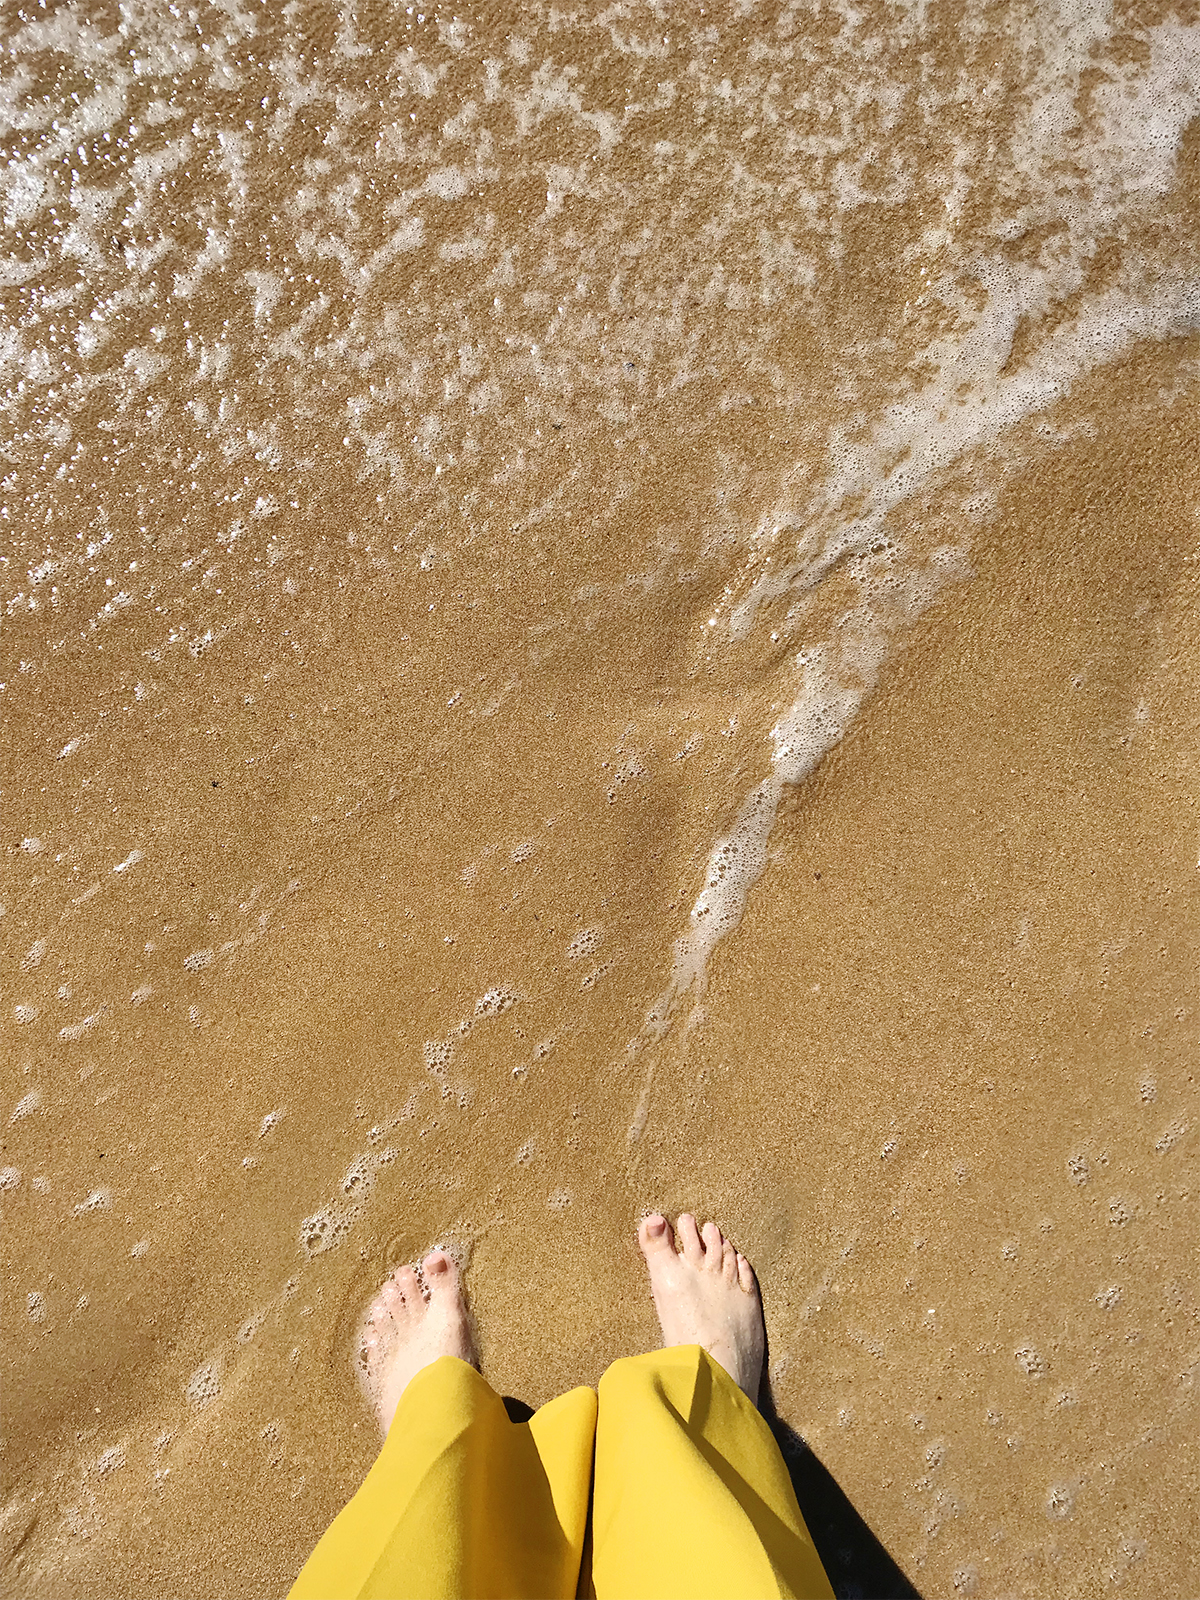 Feet on the sand at Manly